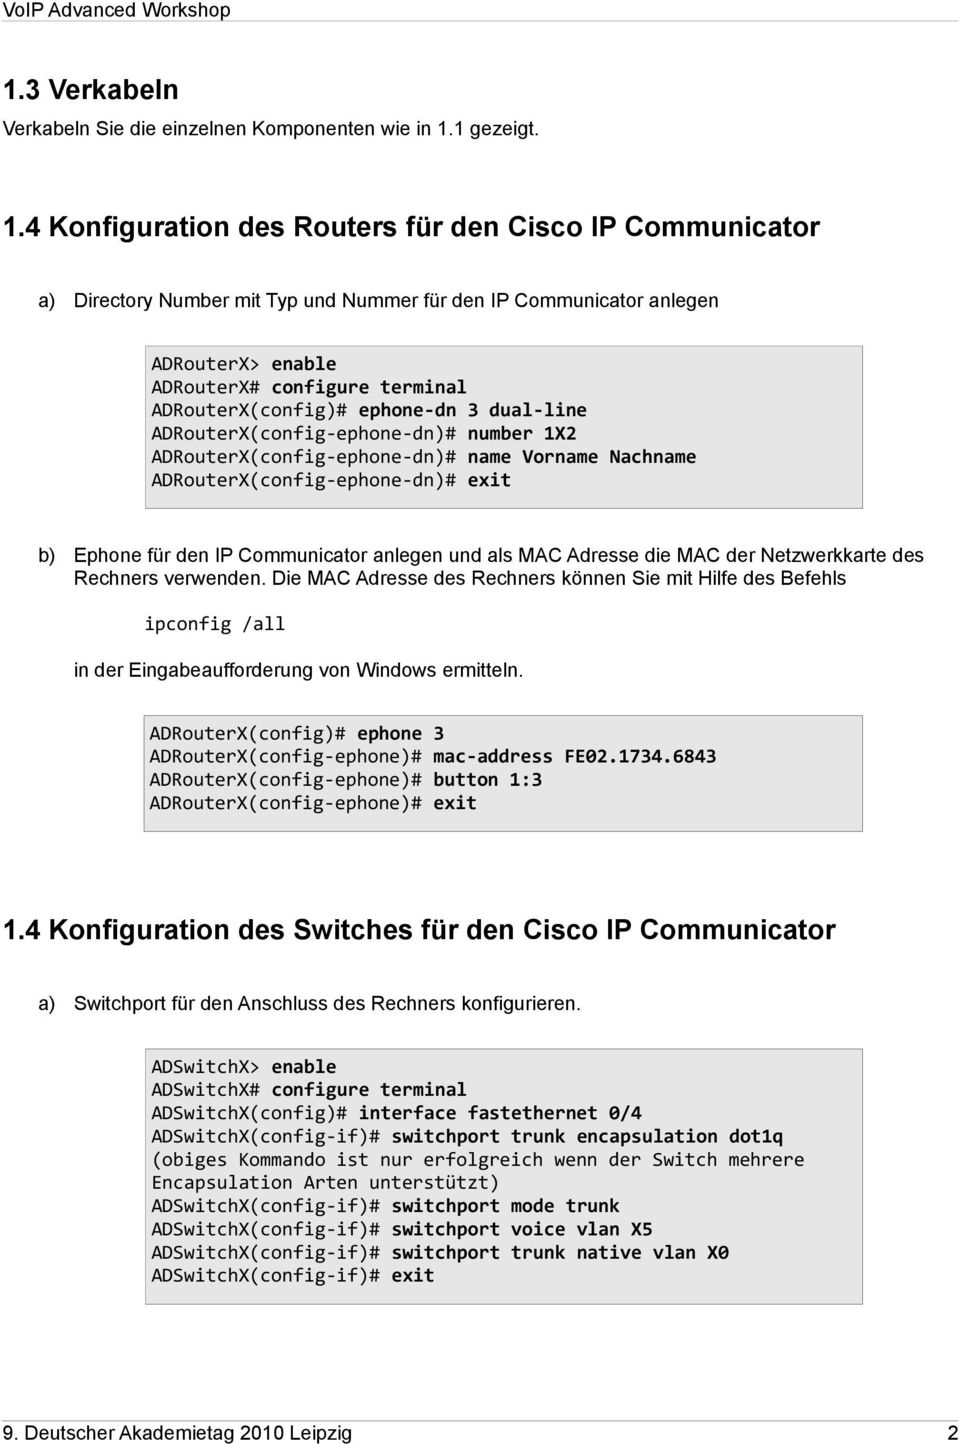 4 Konfiguration des Routers für den Cisco IP Communicator a) Directory Number mit Typ und Nummer für den IP Communicator anlegen ADRouterX> enable ADRouterX(config)# ephone-dn 3 dual-line